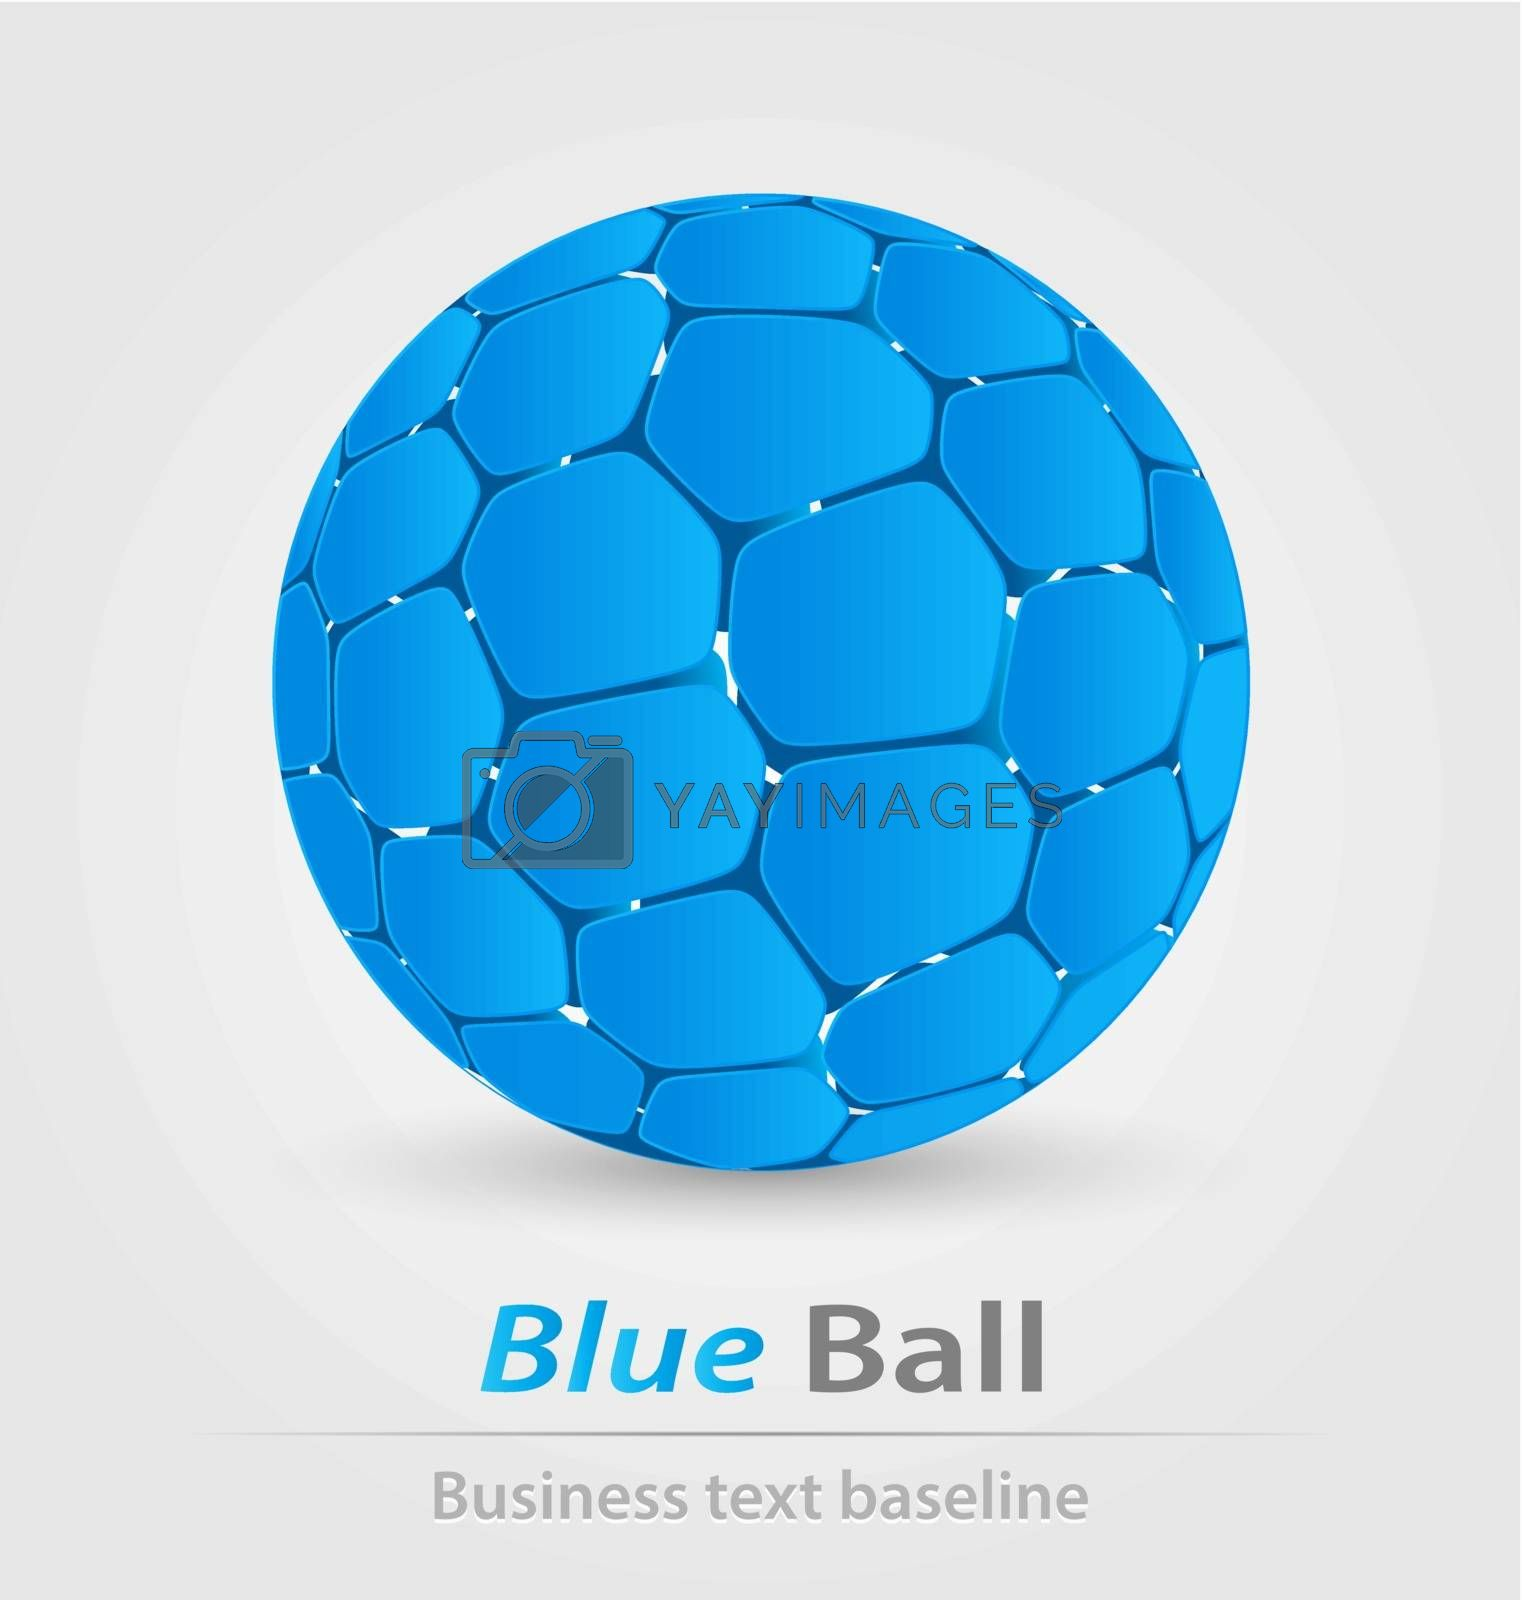 Blue ball elegant icon by stocklady